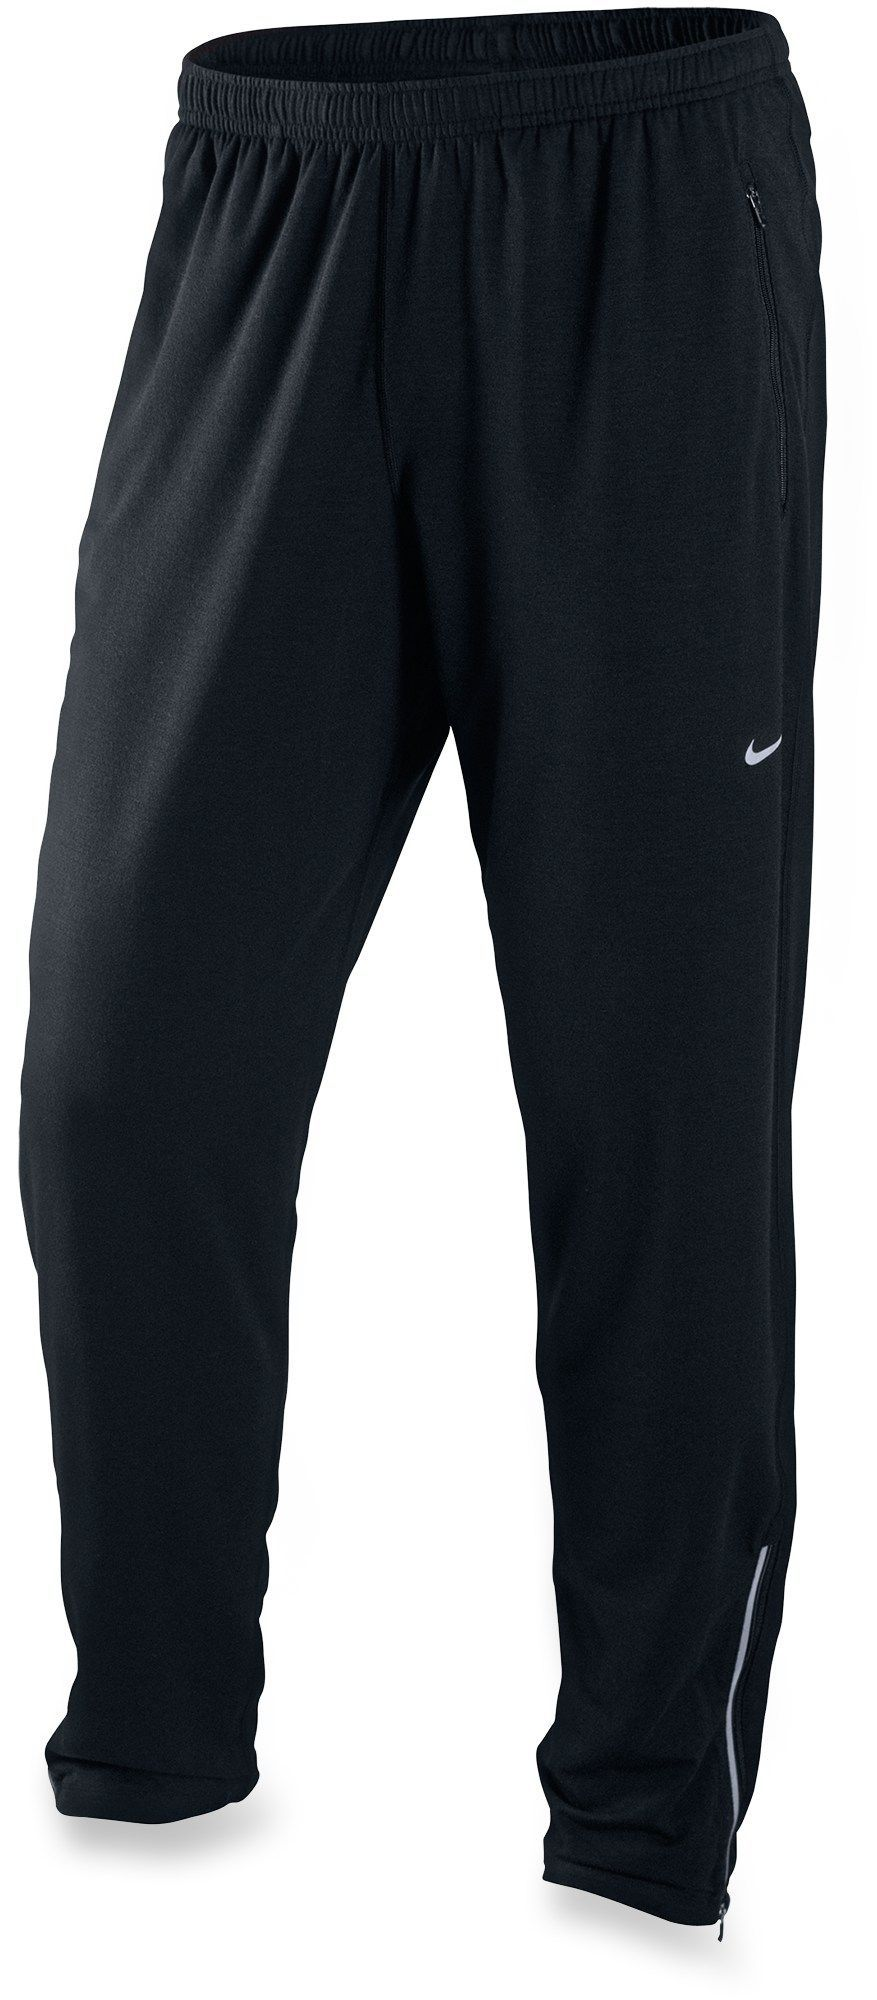 bahía rumor marioneta  Nike Perfect Track Pants - Men's - Free Shipping at REI.com; basically  sweat pants that i can wearing hiking … | Track pants mens, How to wear  joggers, Nike outfits